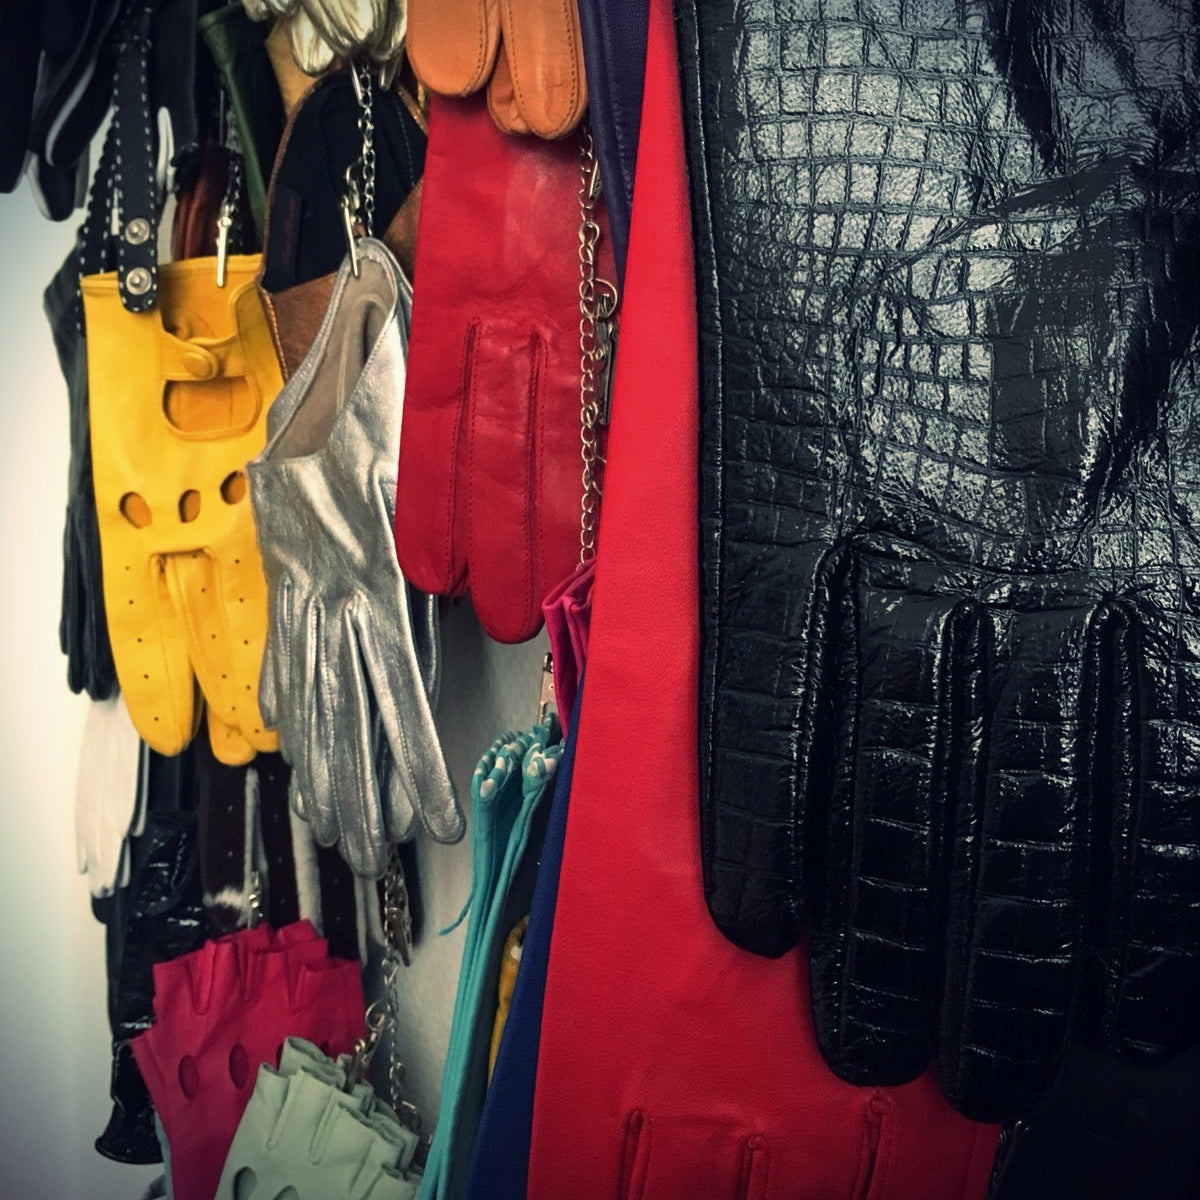 Looking for incredible second hand leather gloves? Ask Ines!